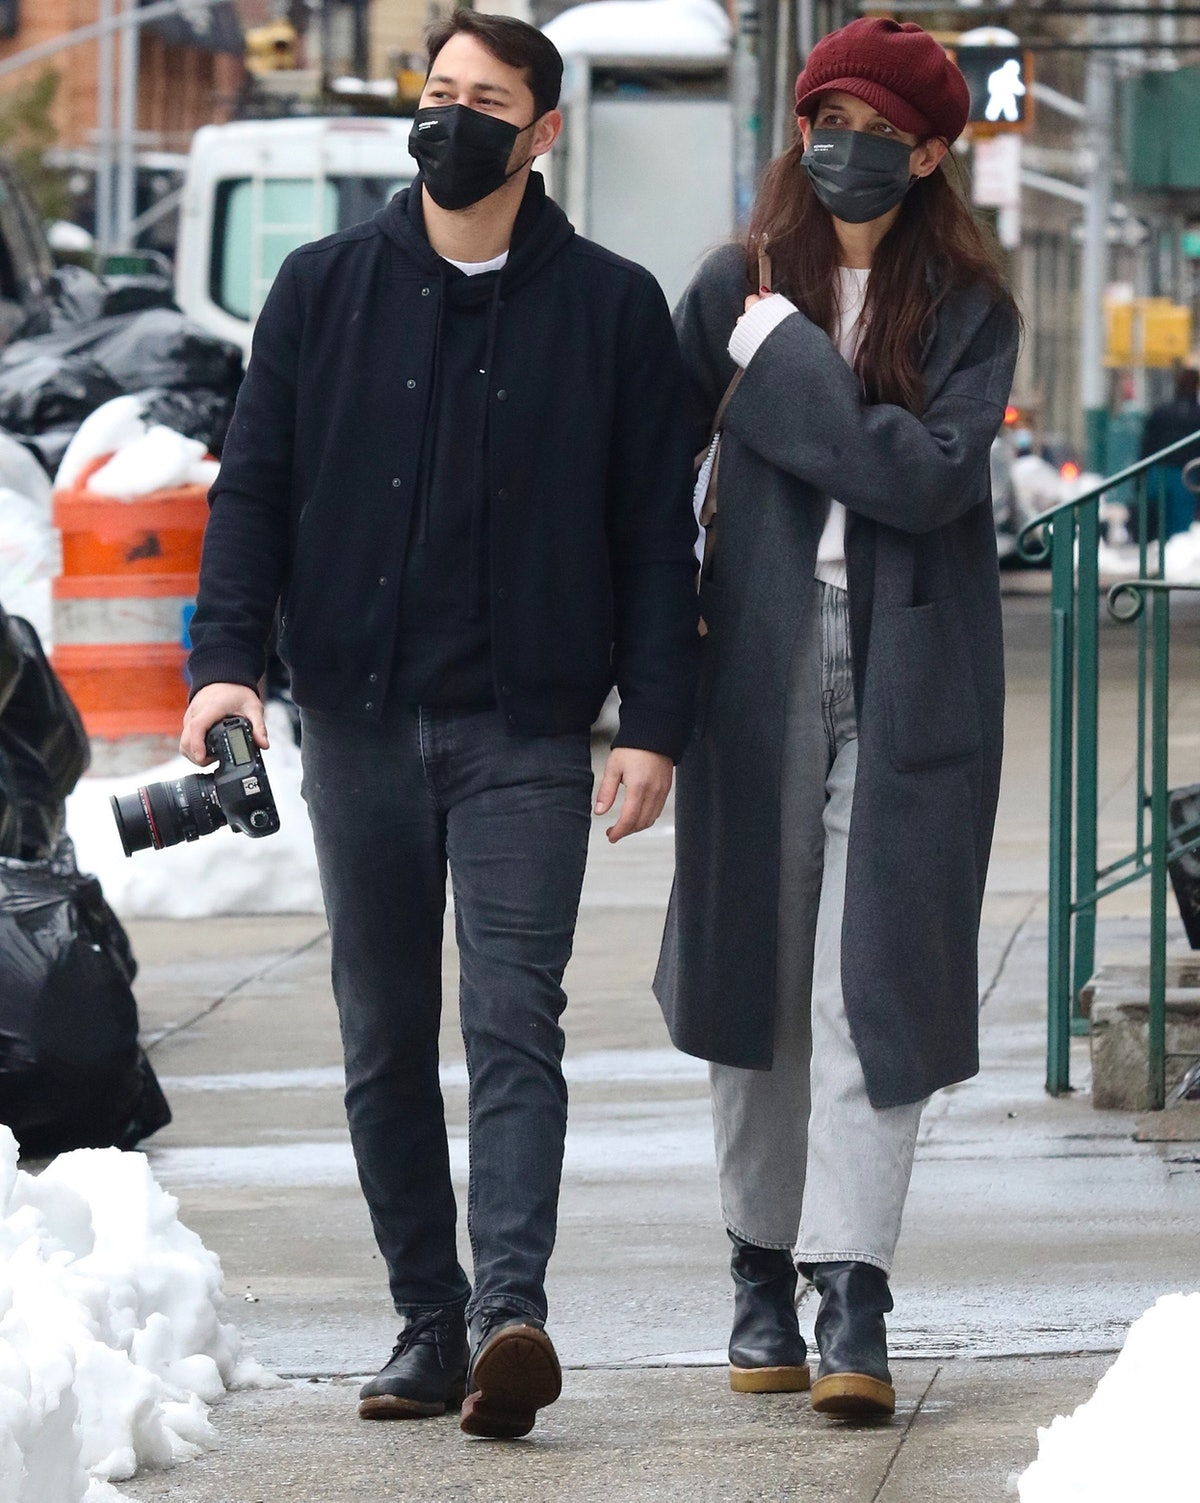 Katie Holmes and Emilio Vitolo Jr. are seen on a walk as Katie takes photos on February 3, 2021 in N...